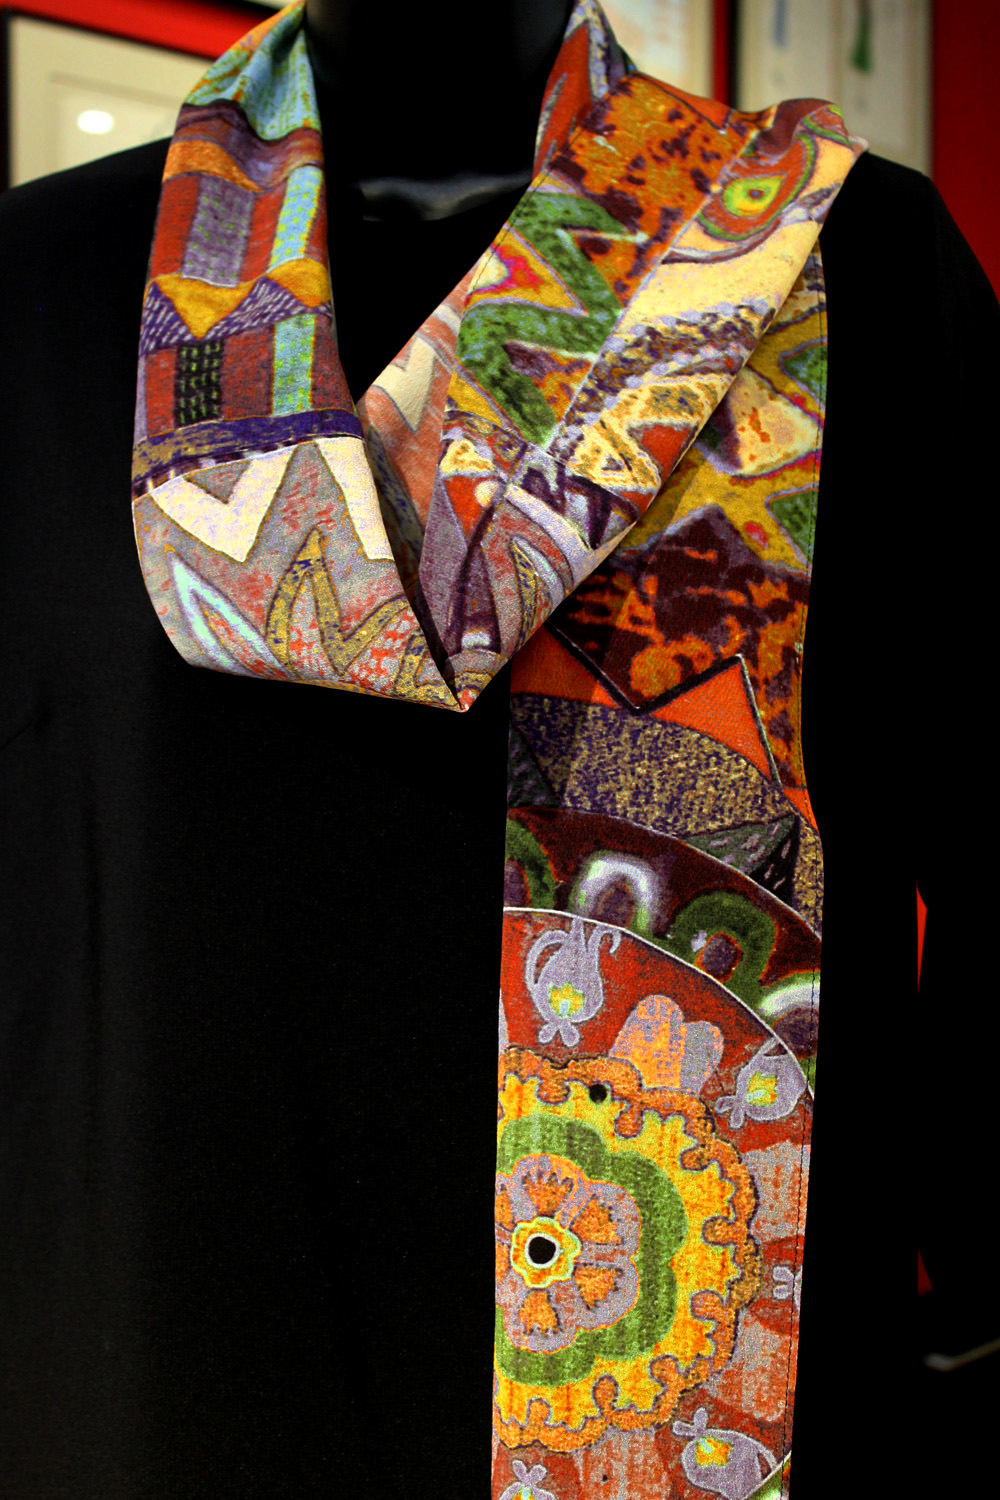 night-circus-earthy-colorful-scarf-from-original-collage-art-by-designer-judi-magier-img_3963-1500px.jpg